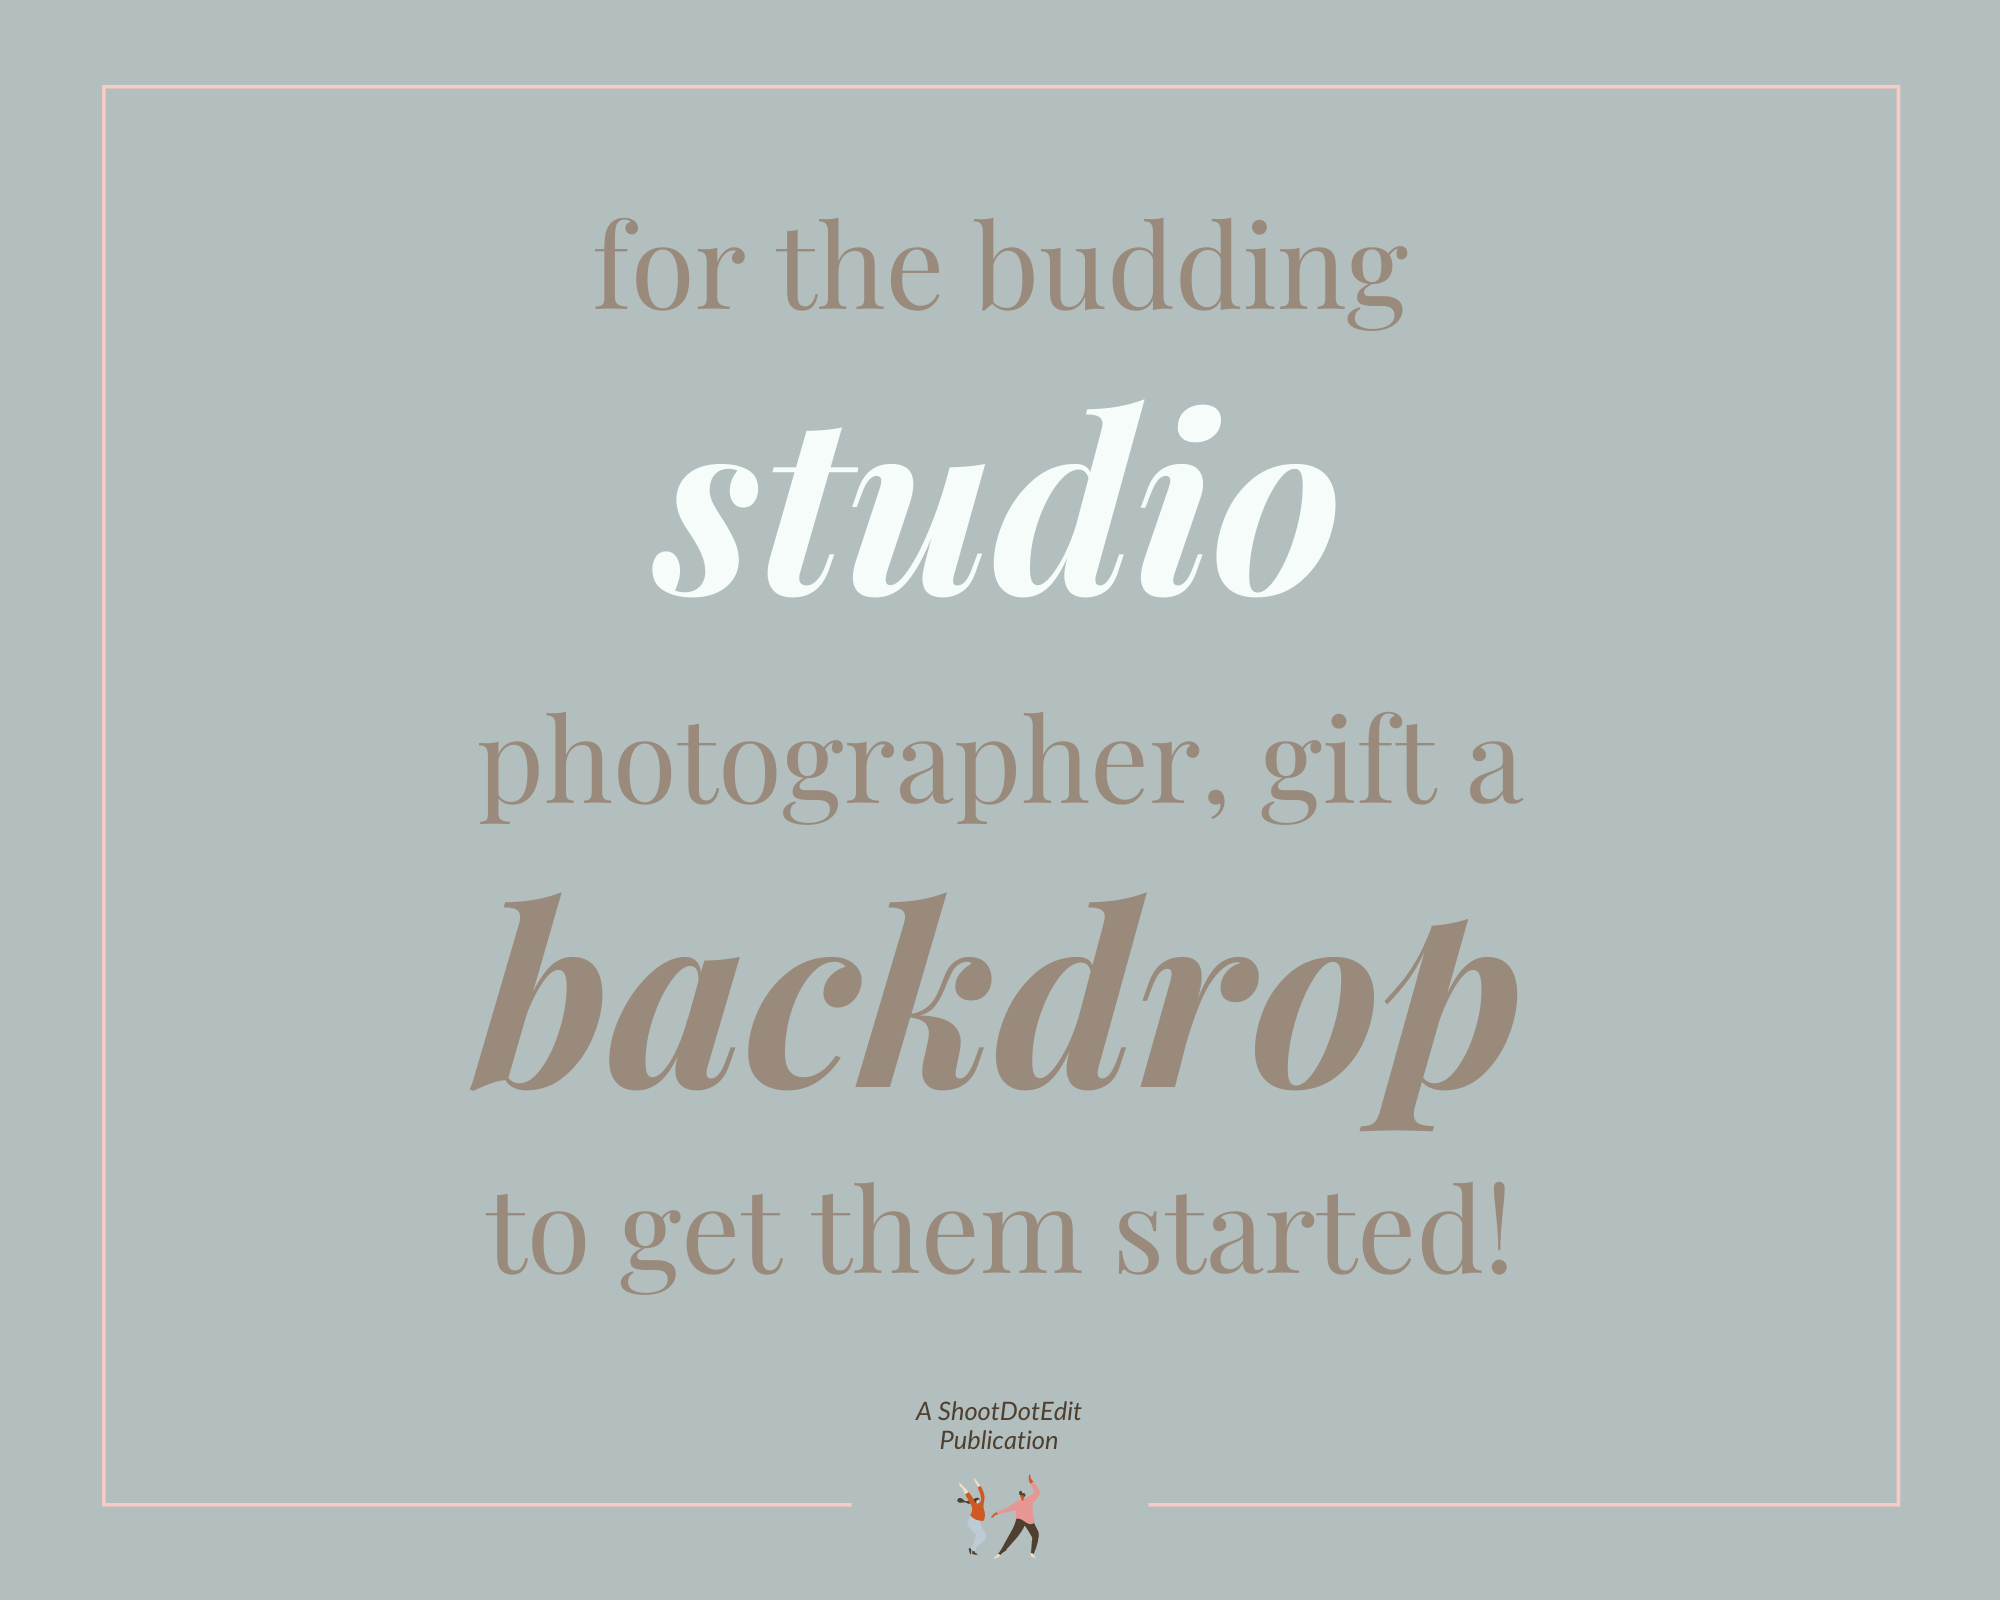 Infographic stating for the budding studio photographer gift a backdrop to get them started